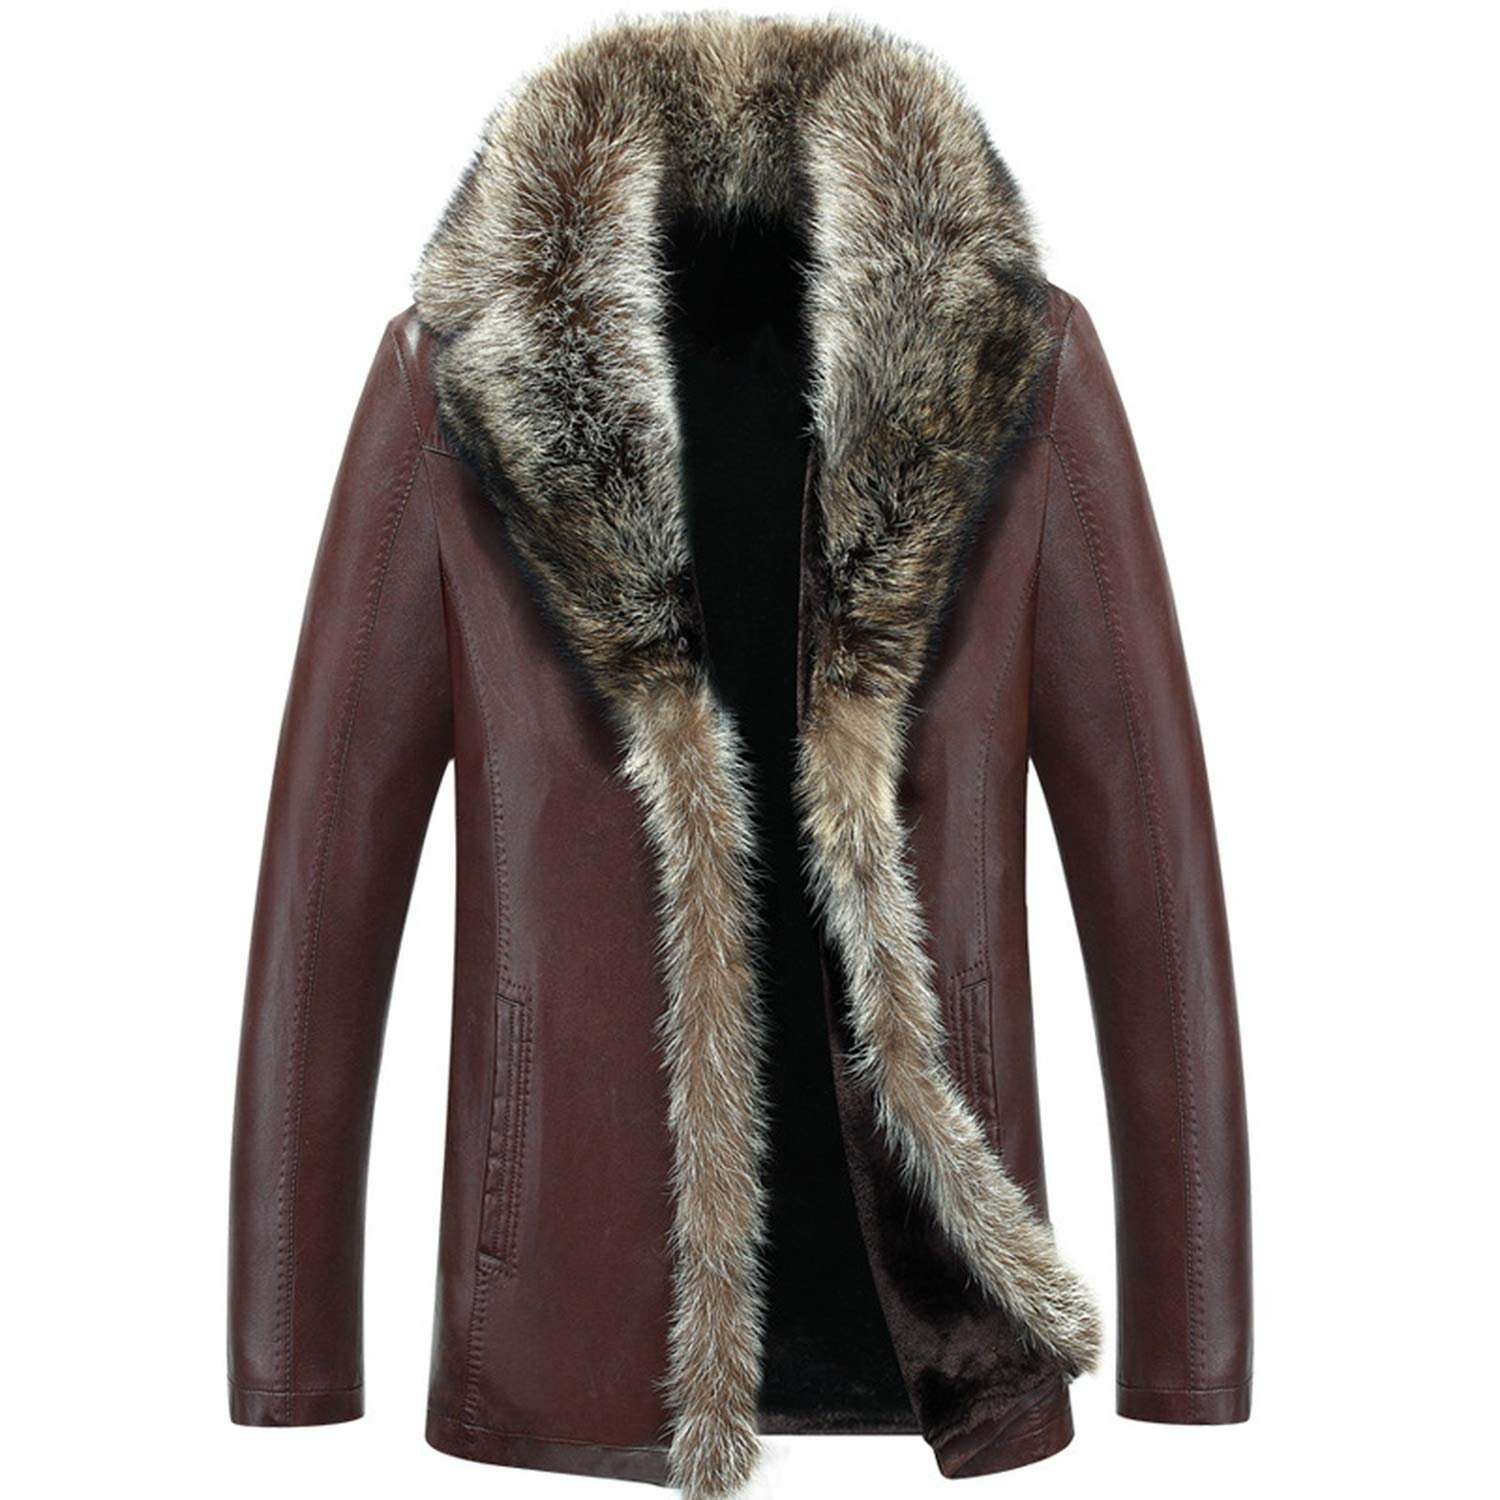 Fresh House Winter Sheep Leather Men Raccoon F-ur Men Long Solid Color Thickening Velvet Leather Coat Six Toys for Women Shirt,As Picture